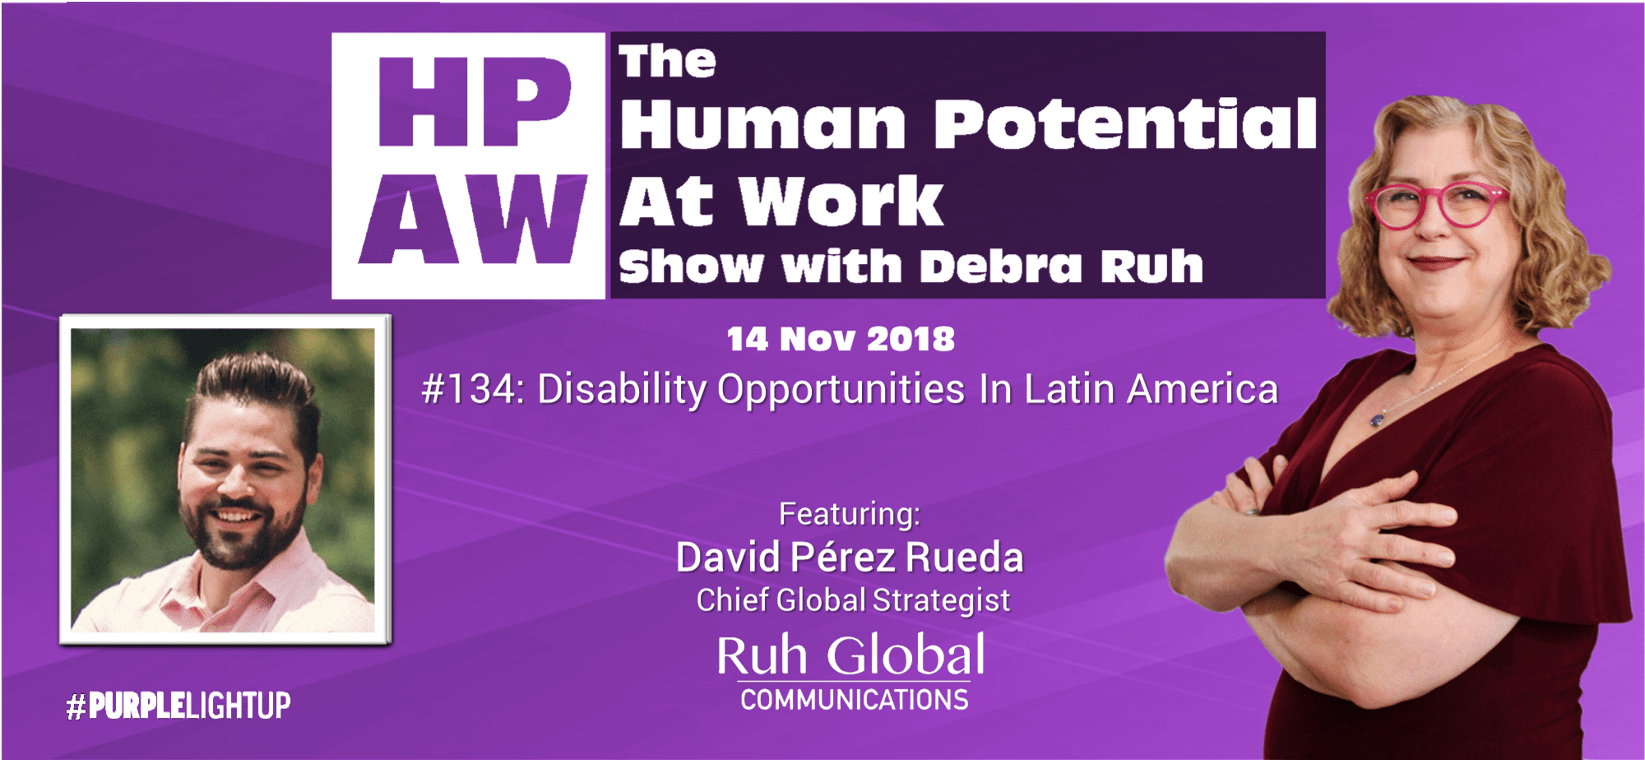 Episode Flyer for #134 Disability Opportunities In Latin America